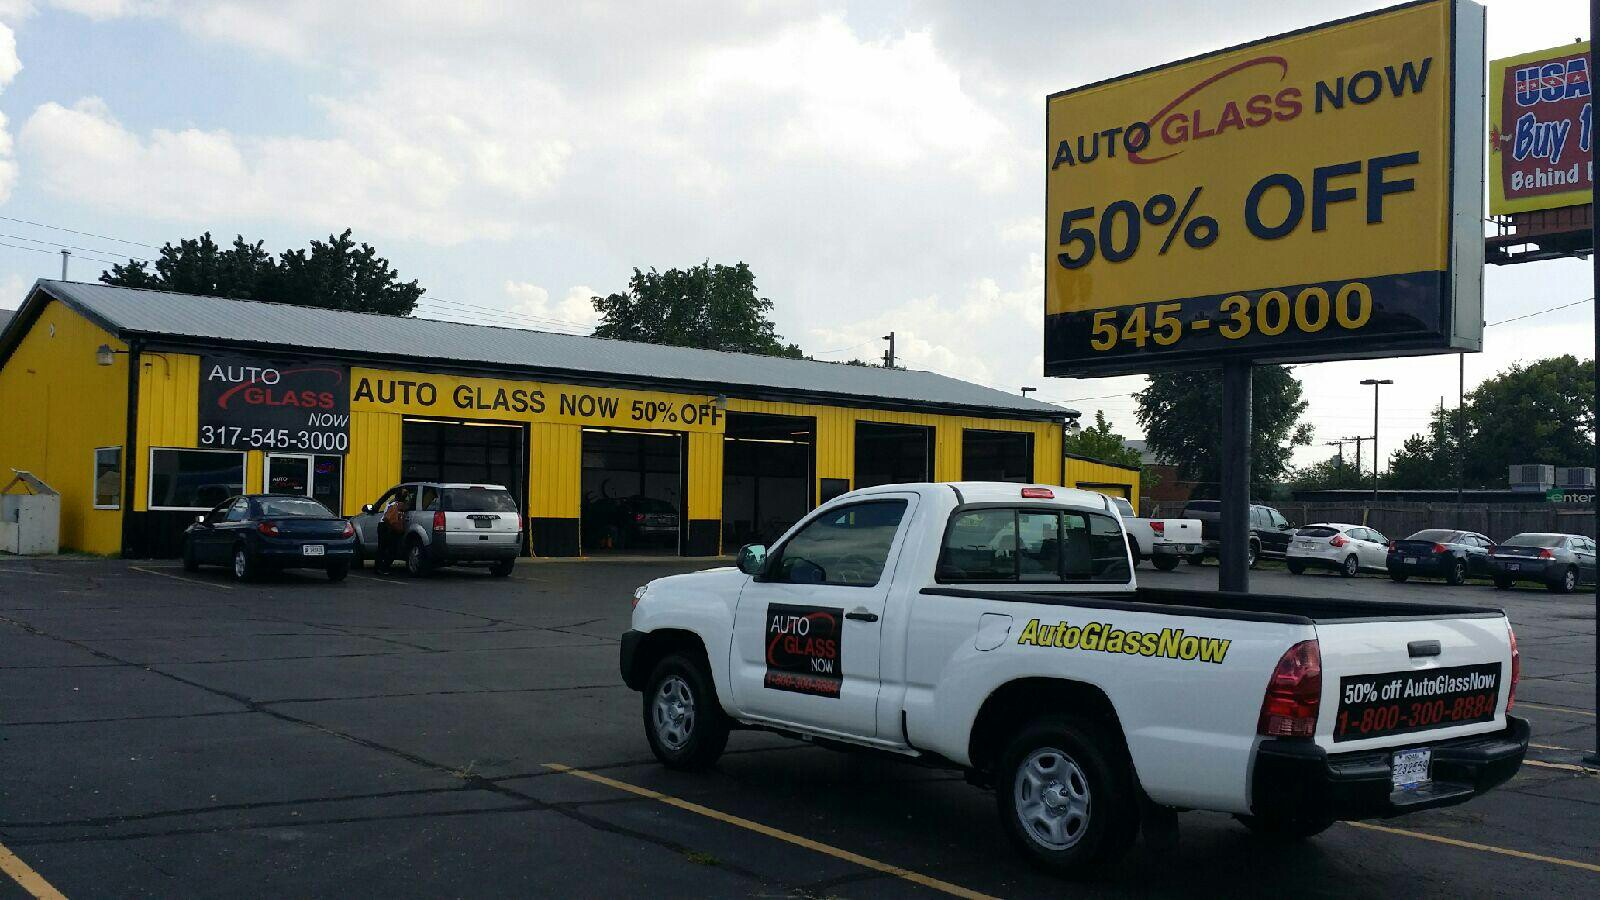 Auto Glass Now 7803 Pendleton Pike Indianapolis In 46226 Yp Com